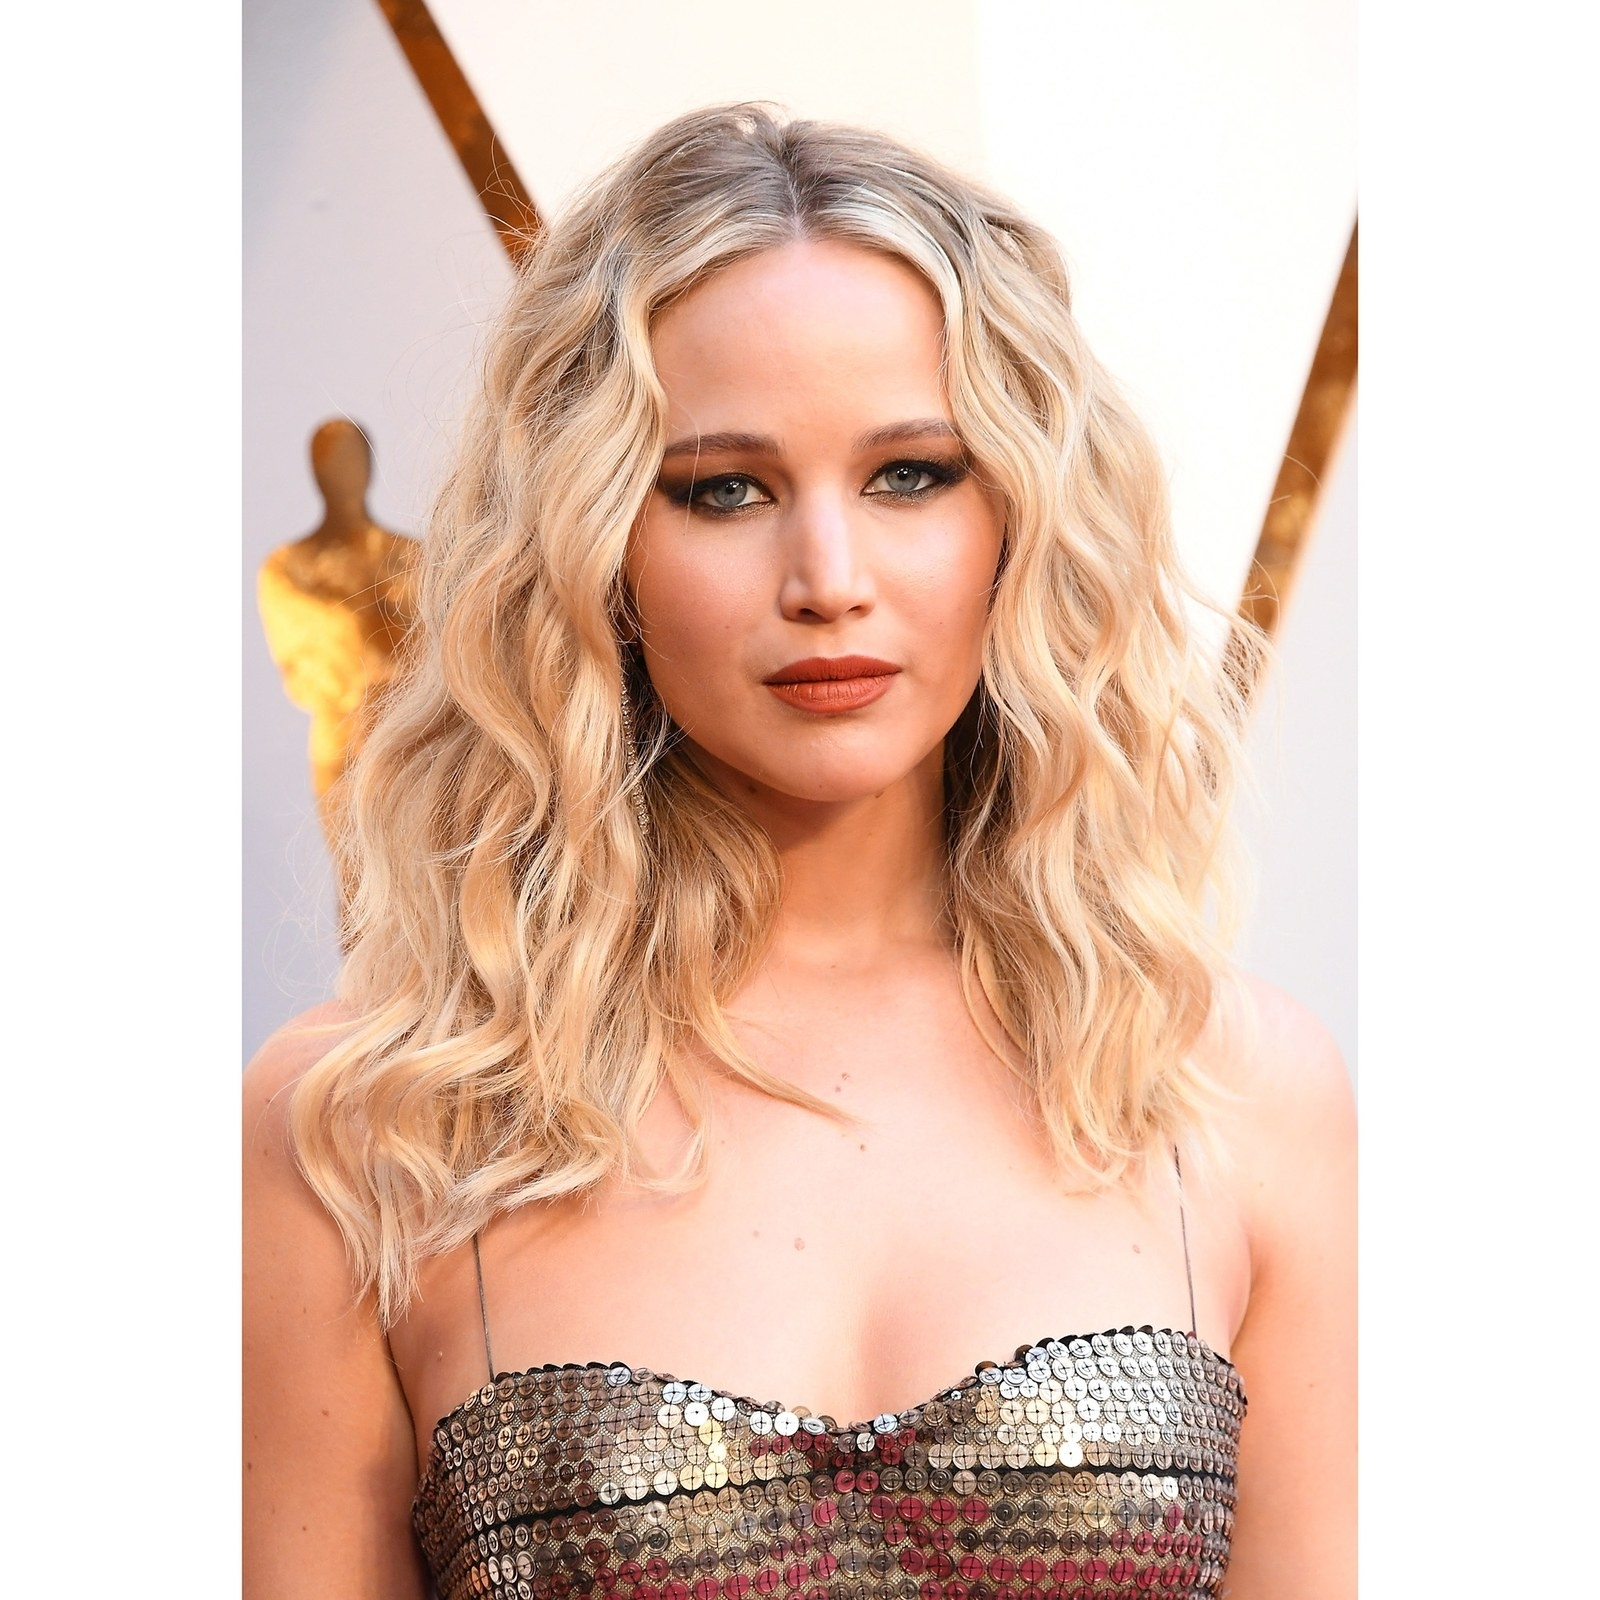 Popular Red Carpet Worthy Hairstyles Within Best Hairstyle Ideas For Long Hair From 2018 Red Carpets – Allure (View 16 of 20)